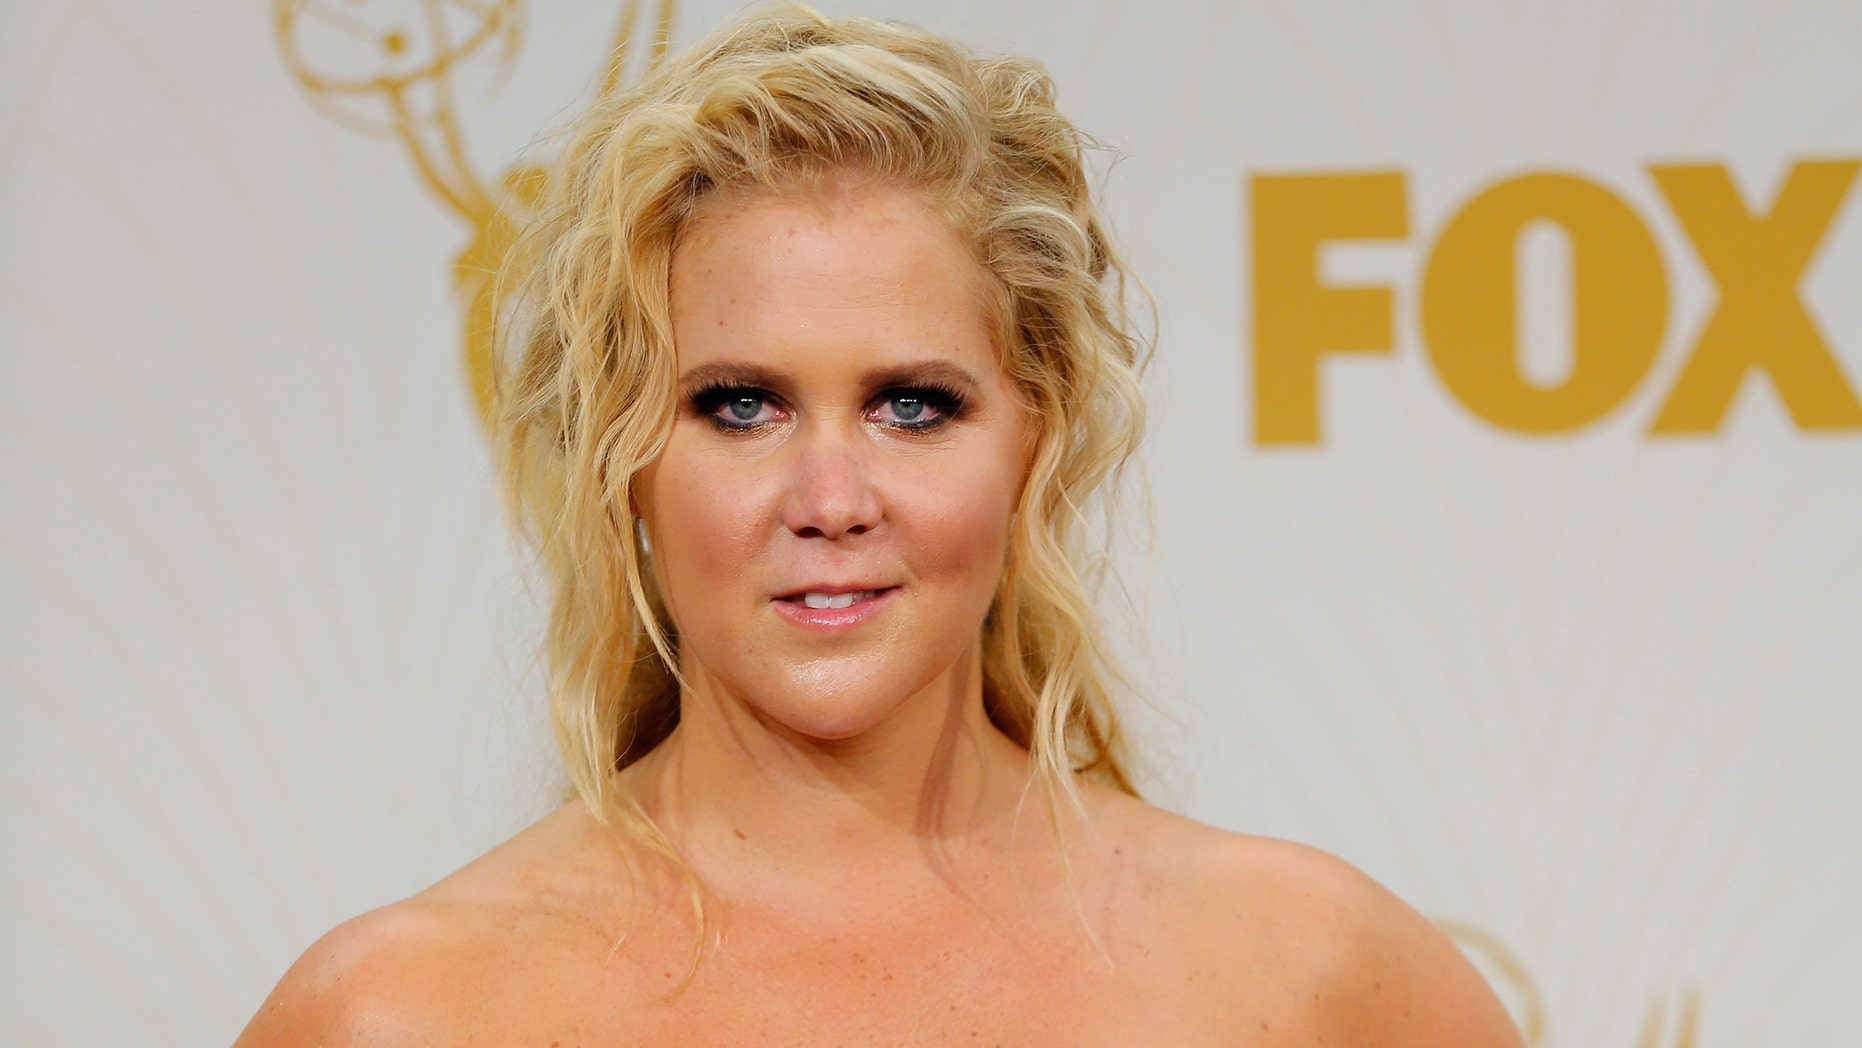 Amy Schumer posing at an event.